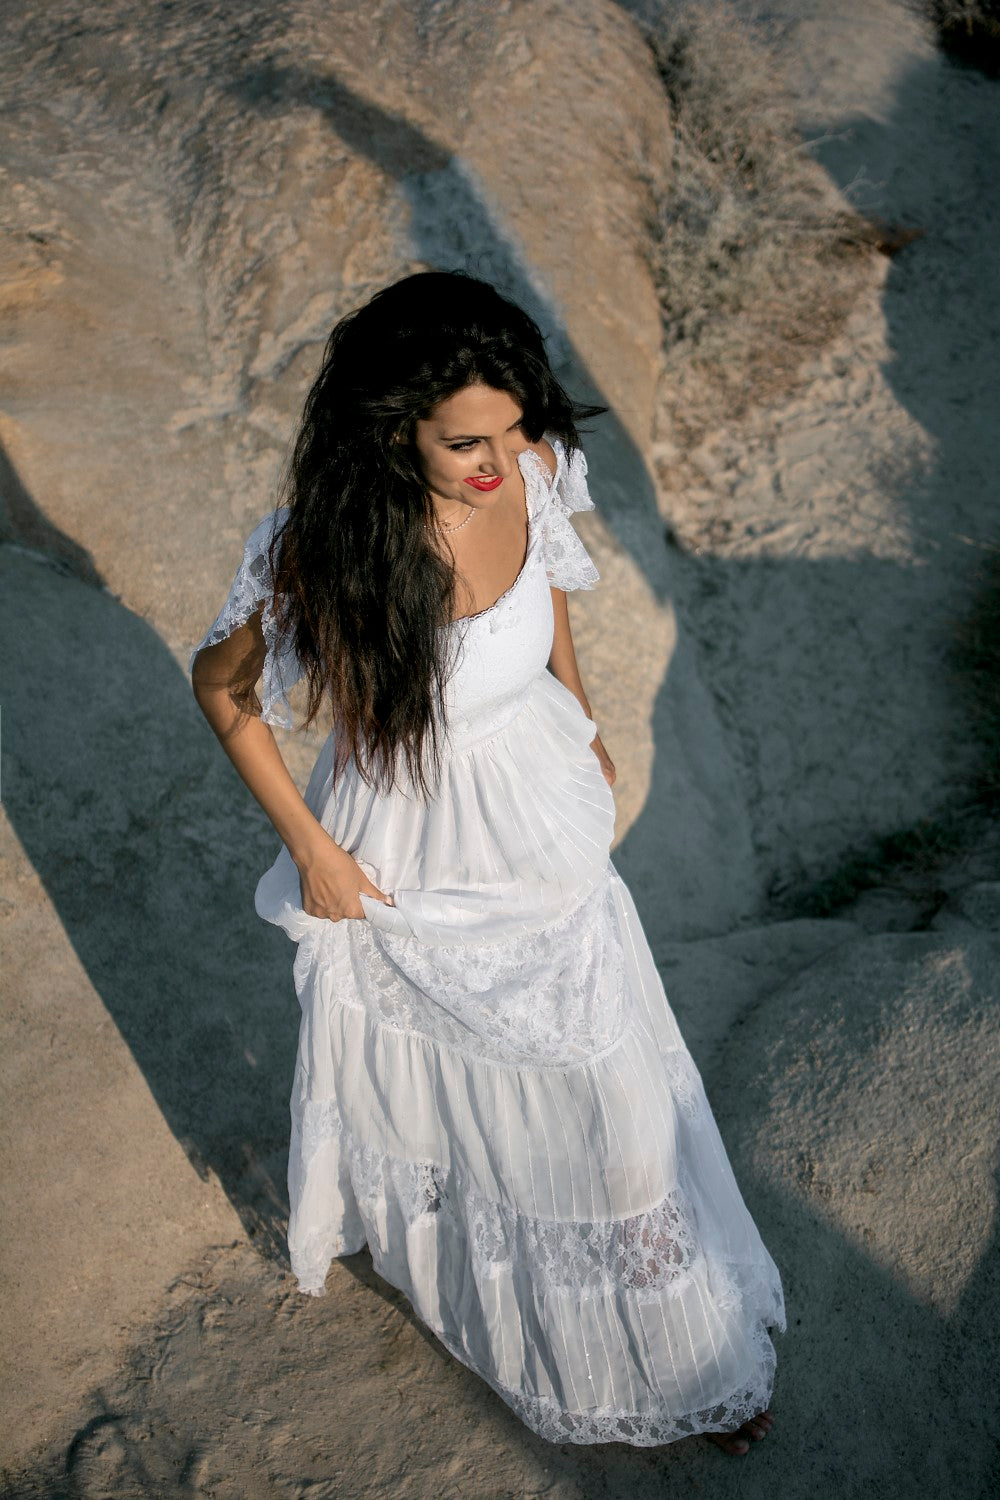 Marine Handmade Gypsy Style Wedding Gown - Wedding Dress - SuzannaM Designs